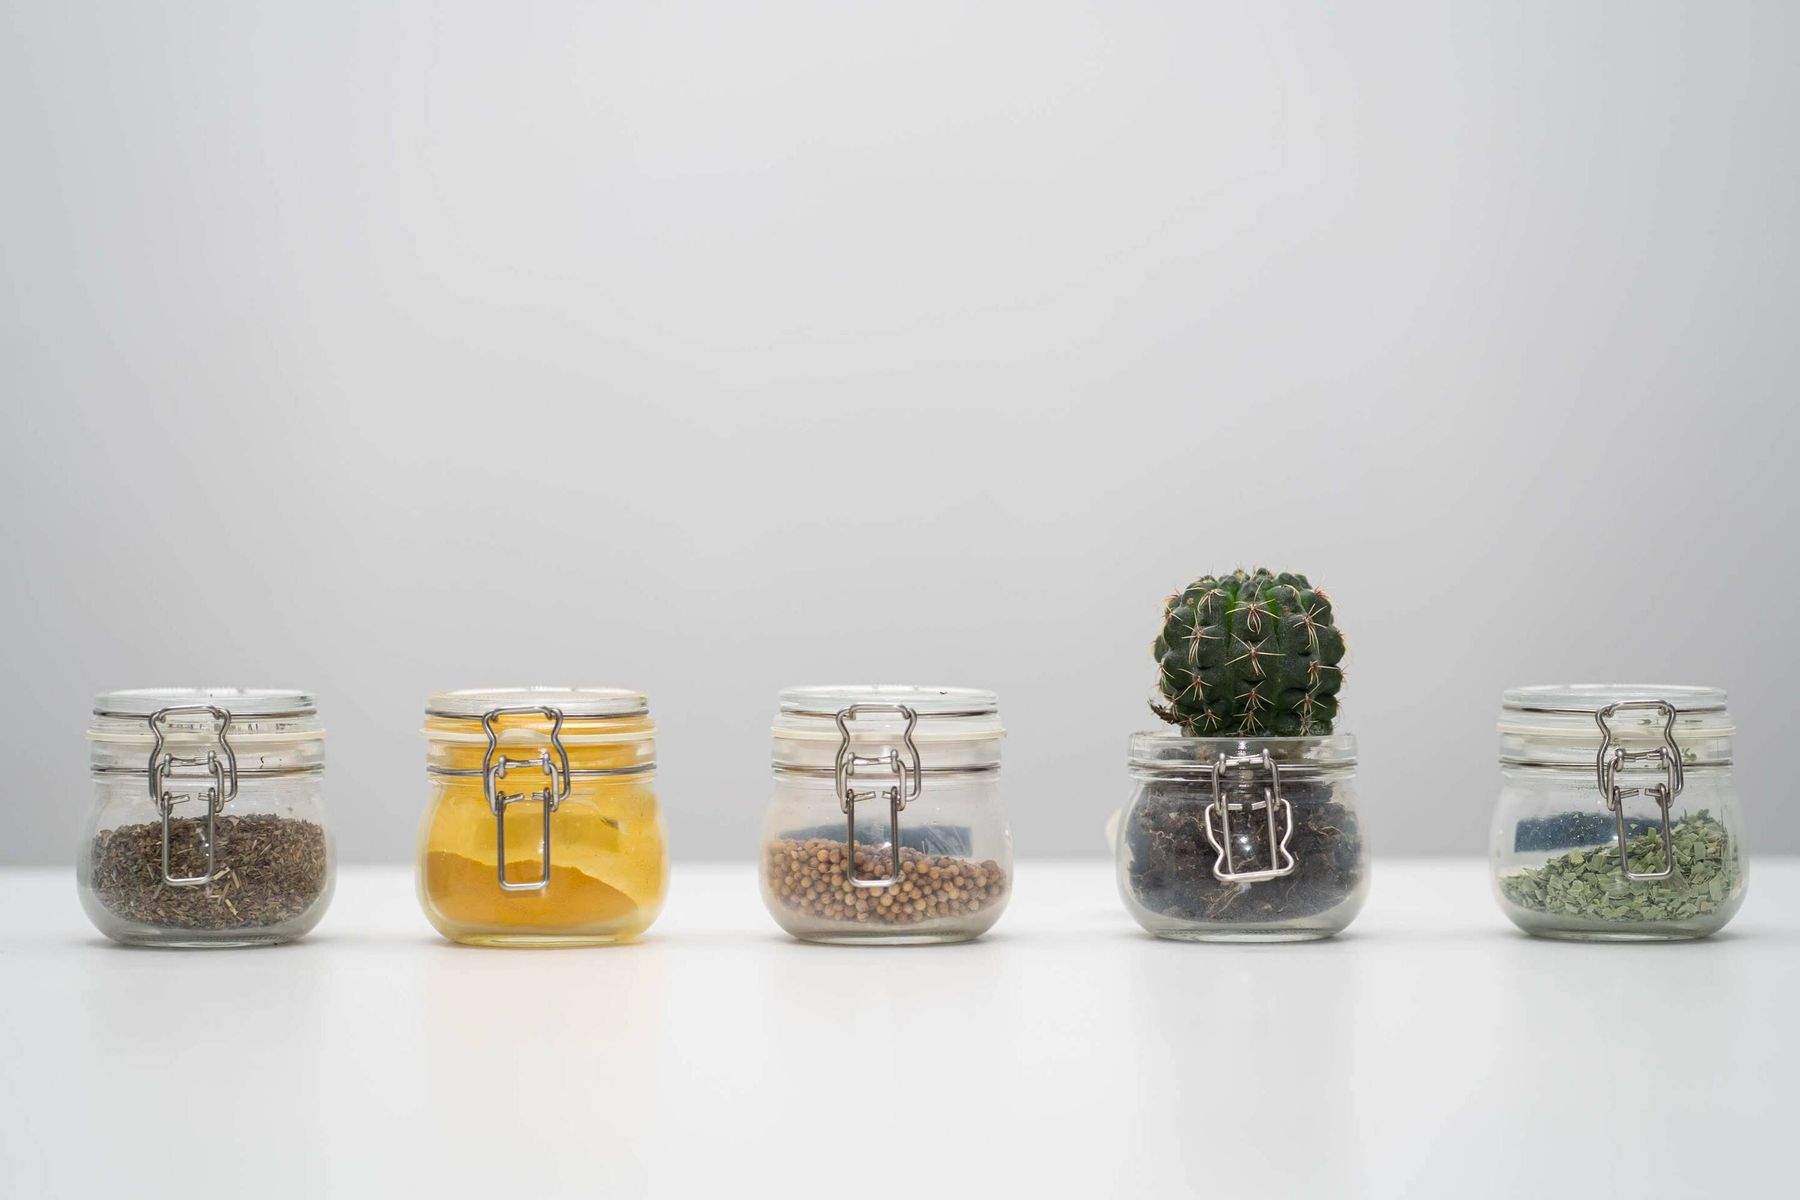 glass pots with spices and plants